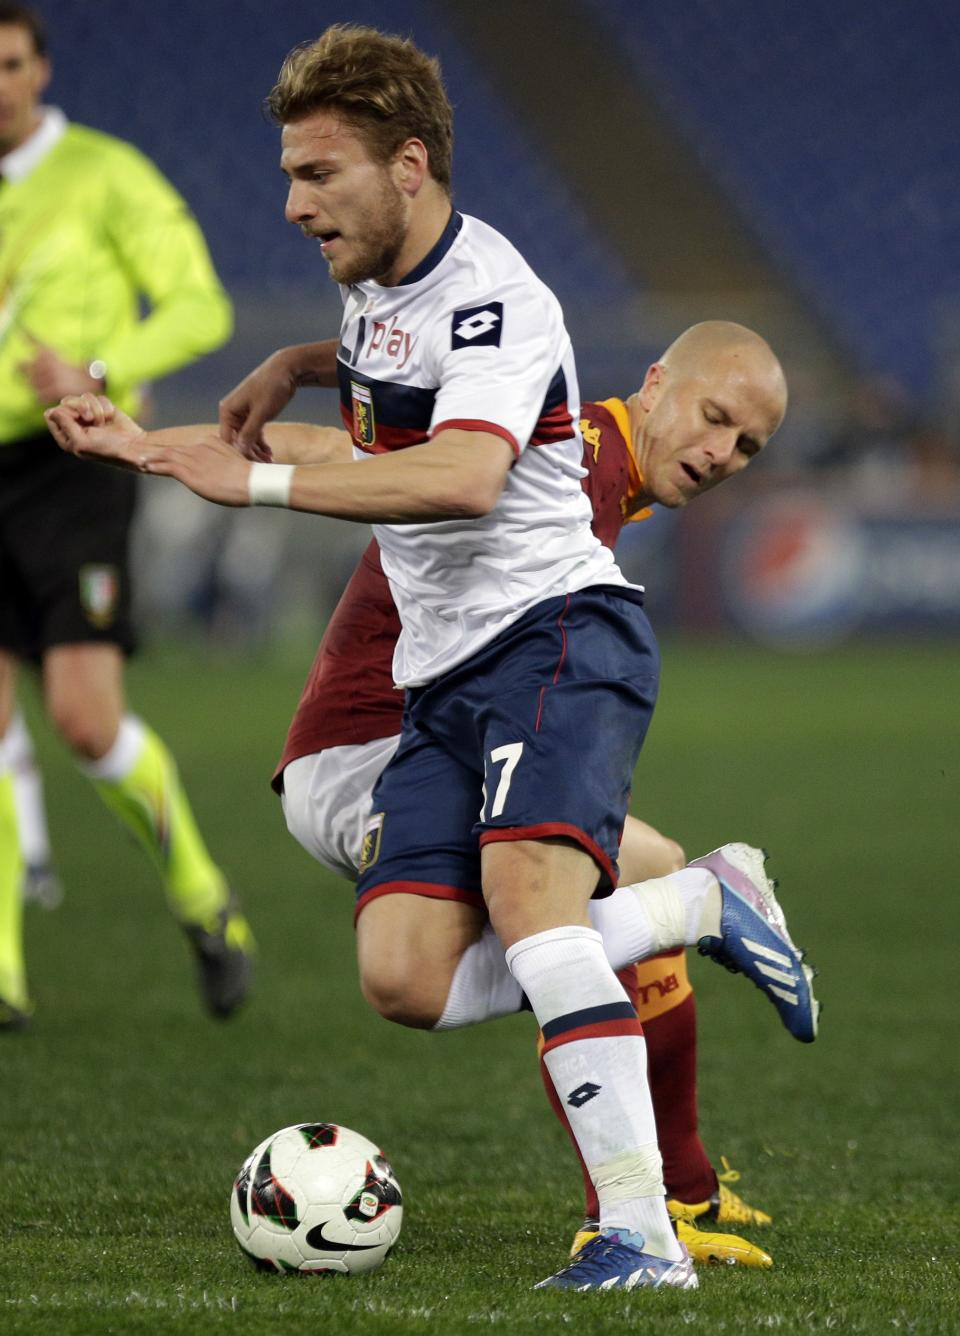 Genoa forward Ciro Immobile, left, and AS Roma U.S. midfielder Michael Bradley, fight for the ball during a Serie A soccer match between As Roma and Genoa, in Rome's Olympic stadium, Sunday, March 3, 2013. (AP Photo/Andrew Medichini)